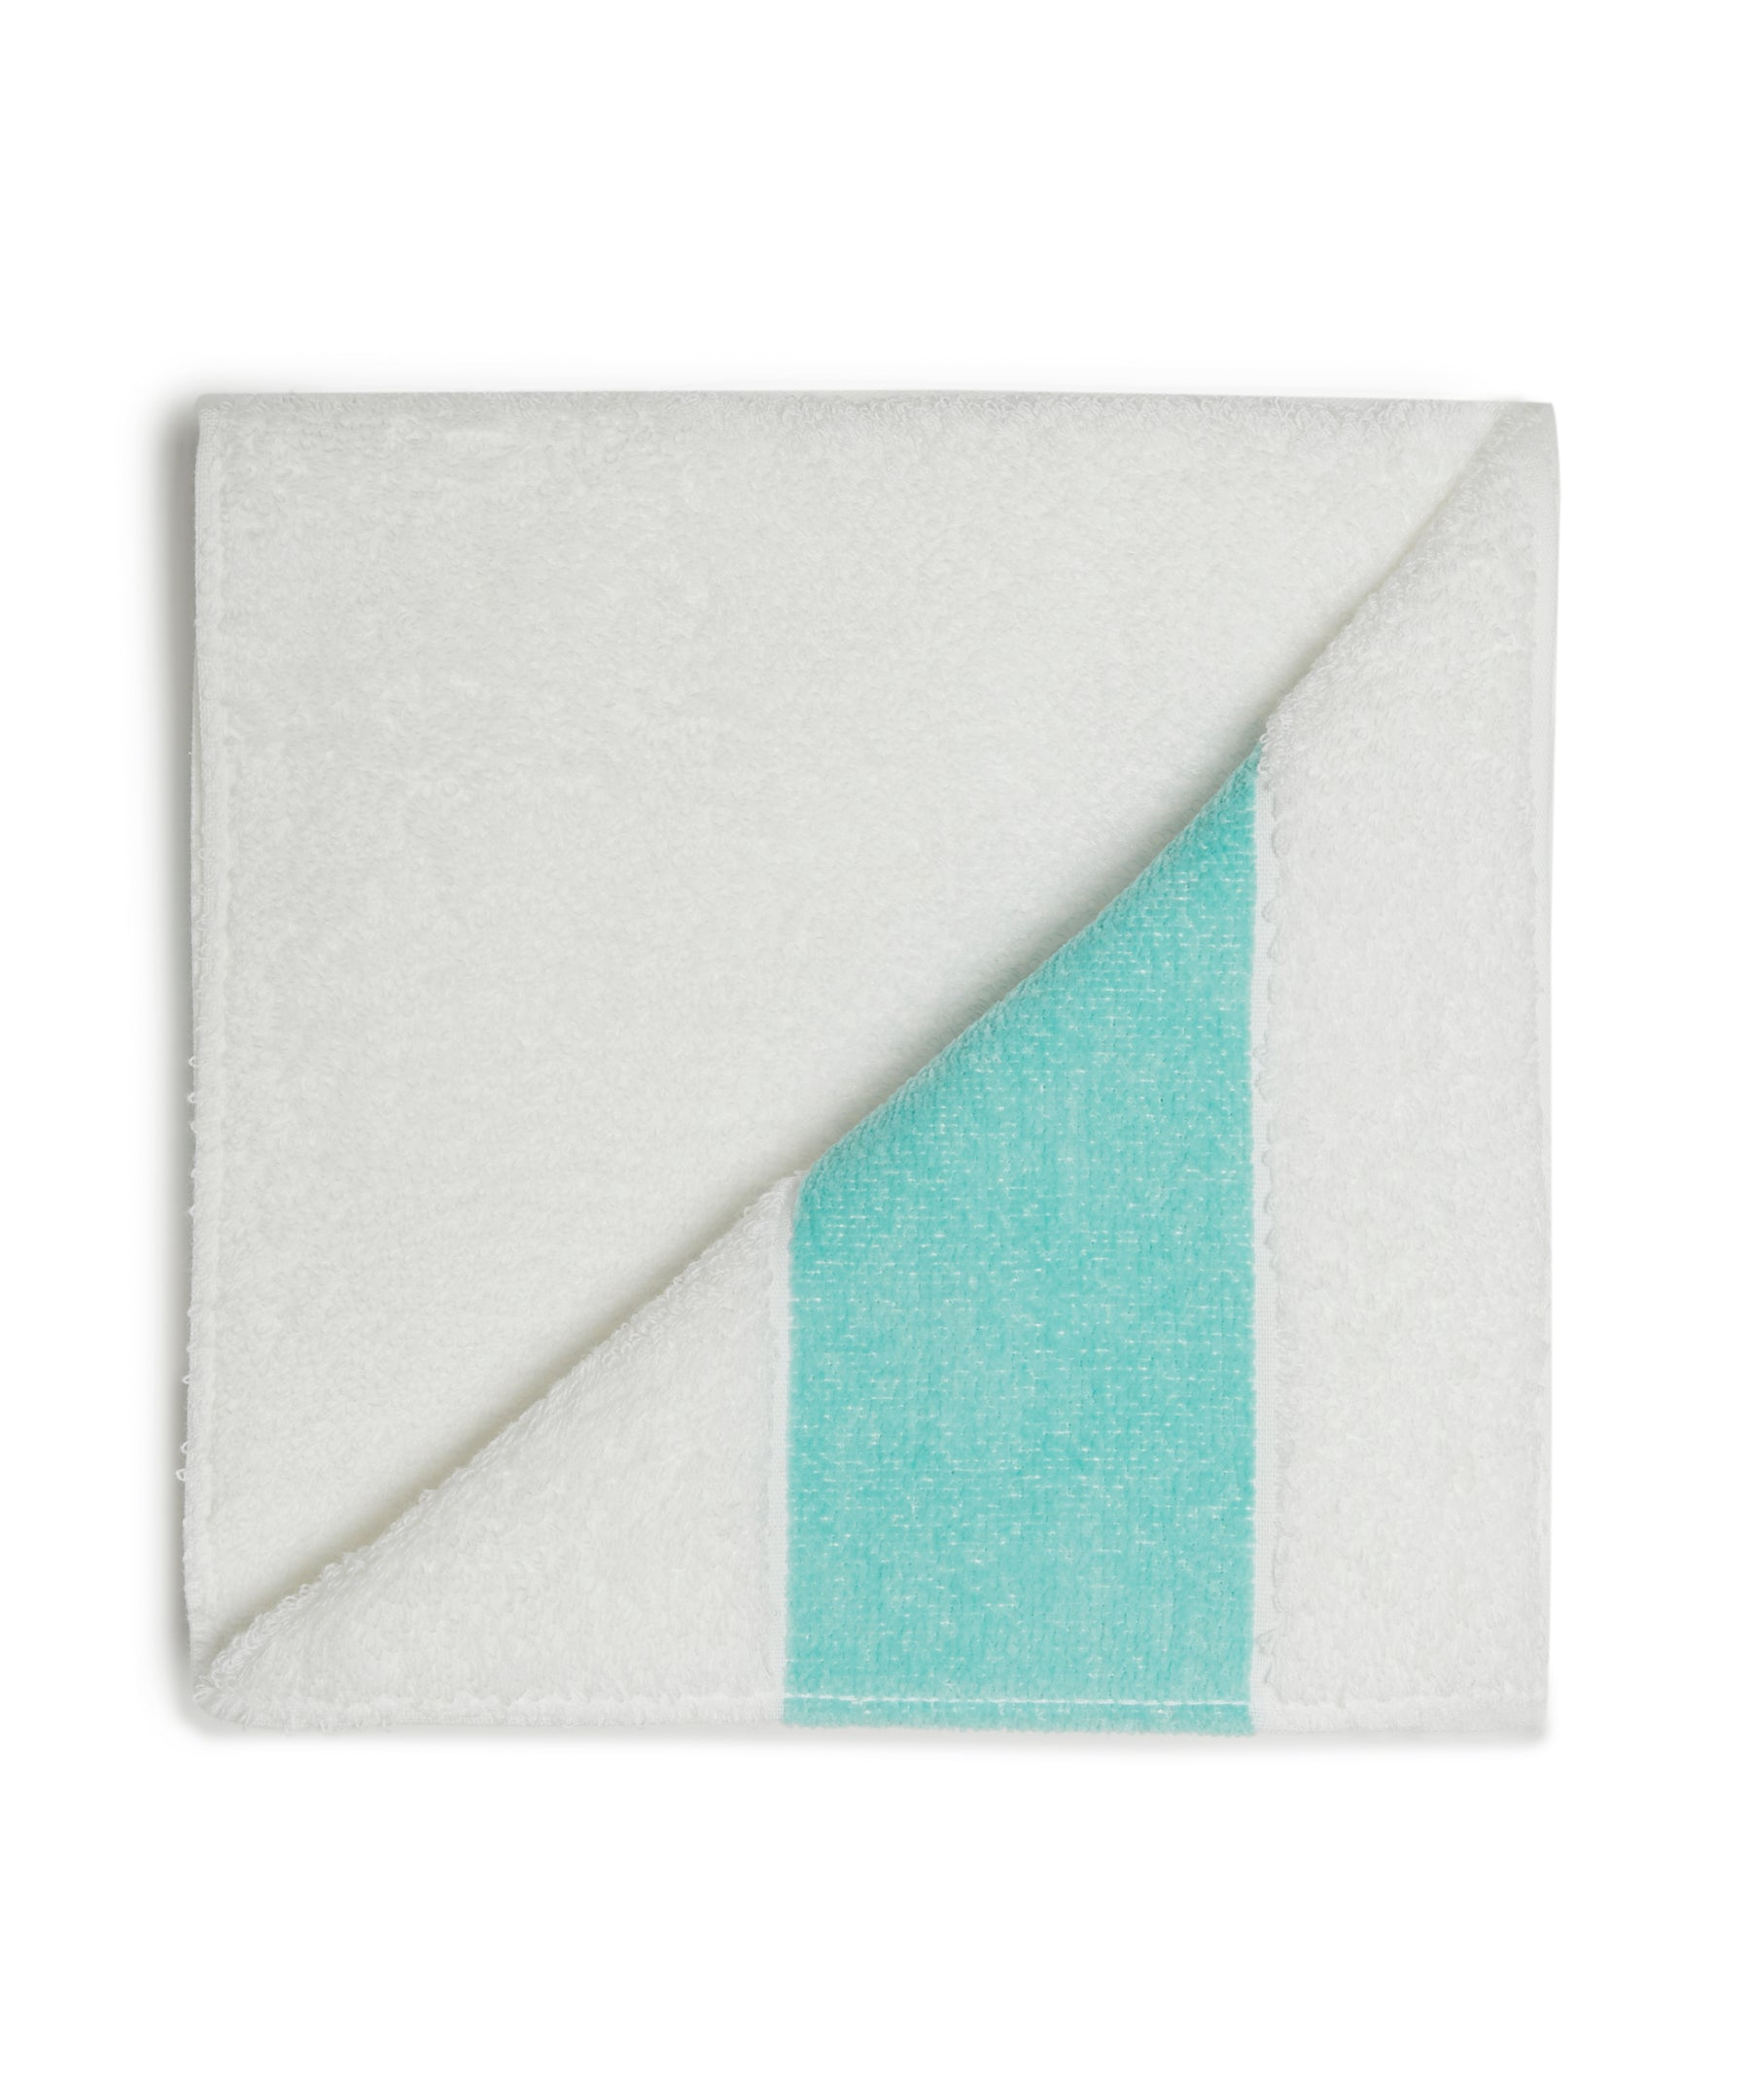 Exclusiv Towel (Turquoise) by Feiler